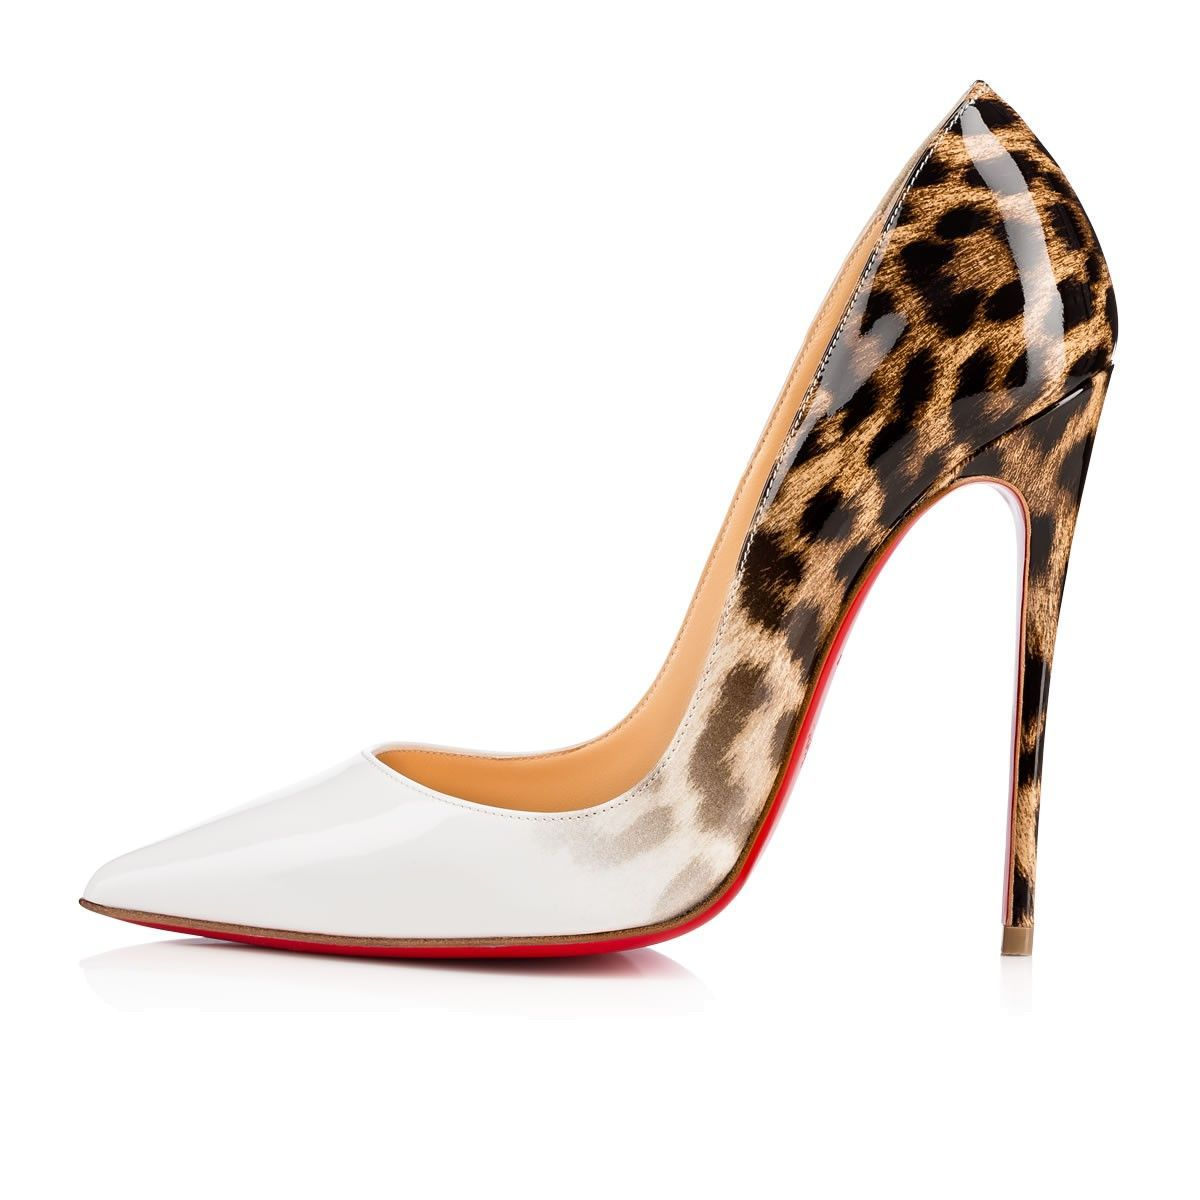 bb203249890c Shoes - So Kate - Christian Louboutin